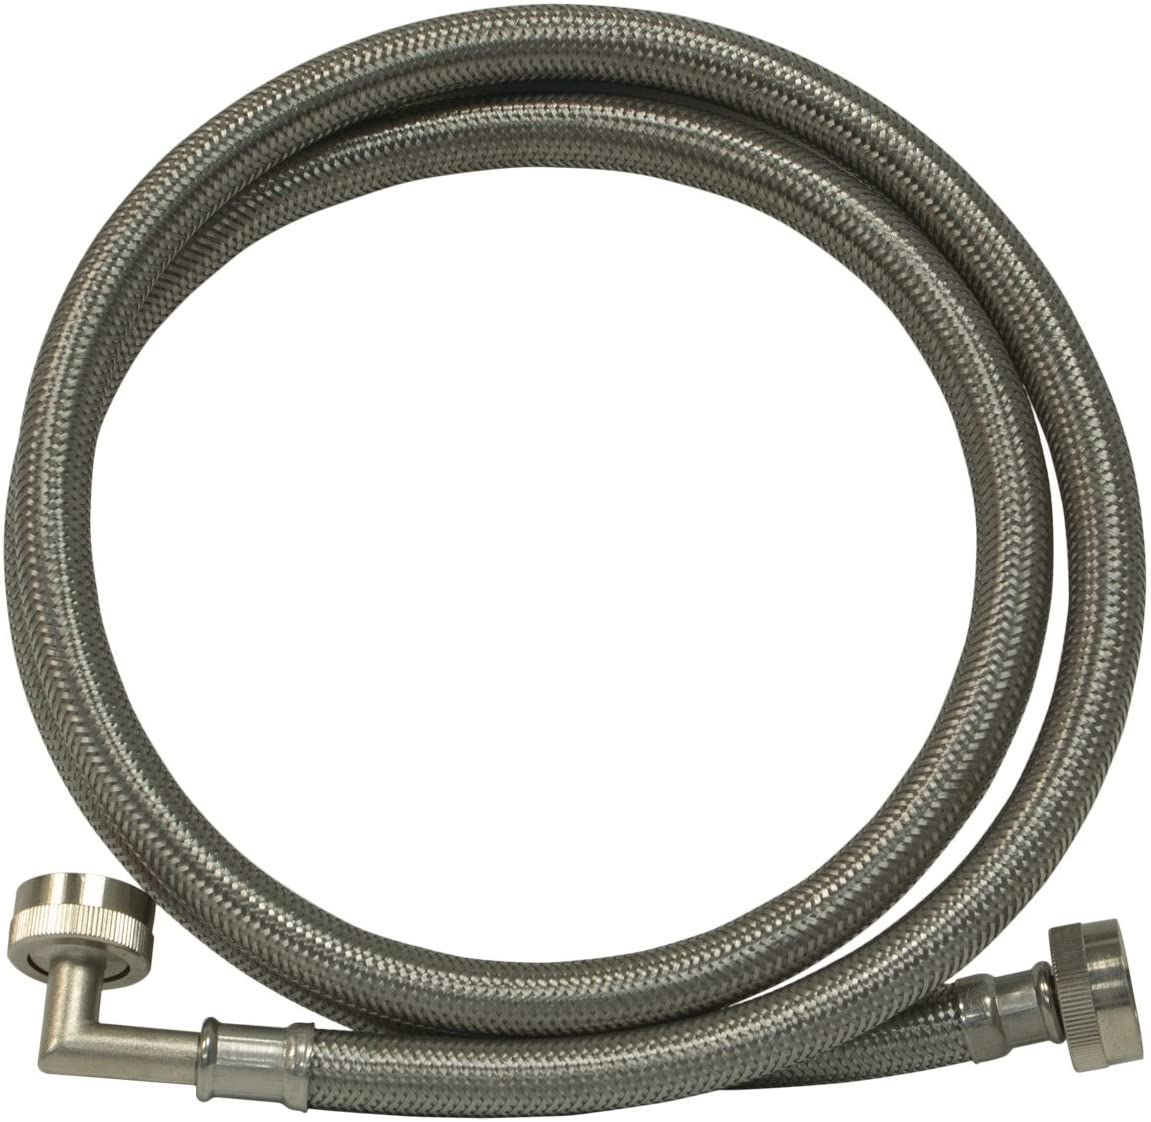 Eastman 48375 Stainless Steel Washing Machine Hose with Elbow, 6'